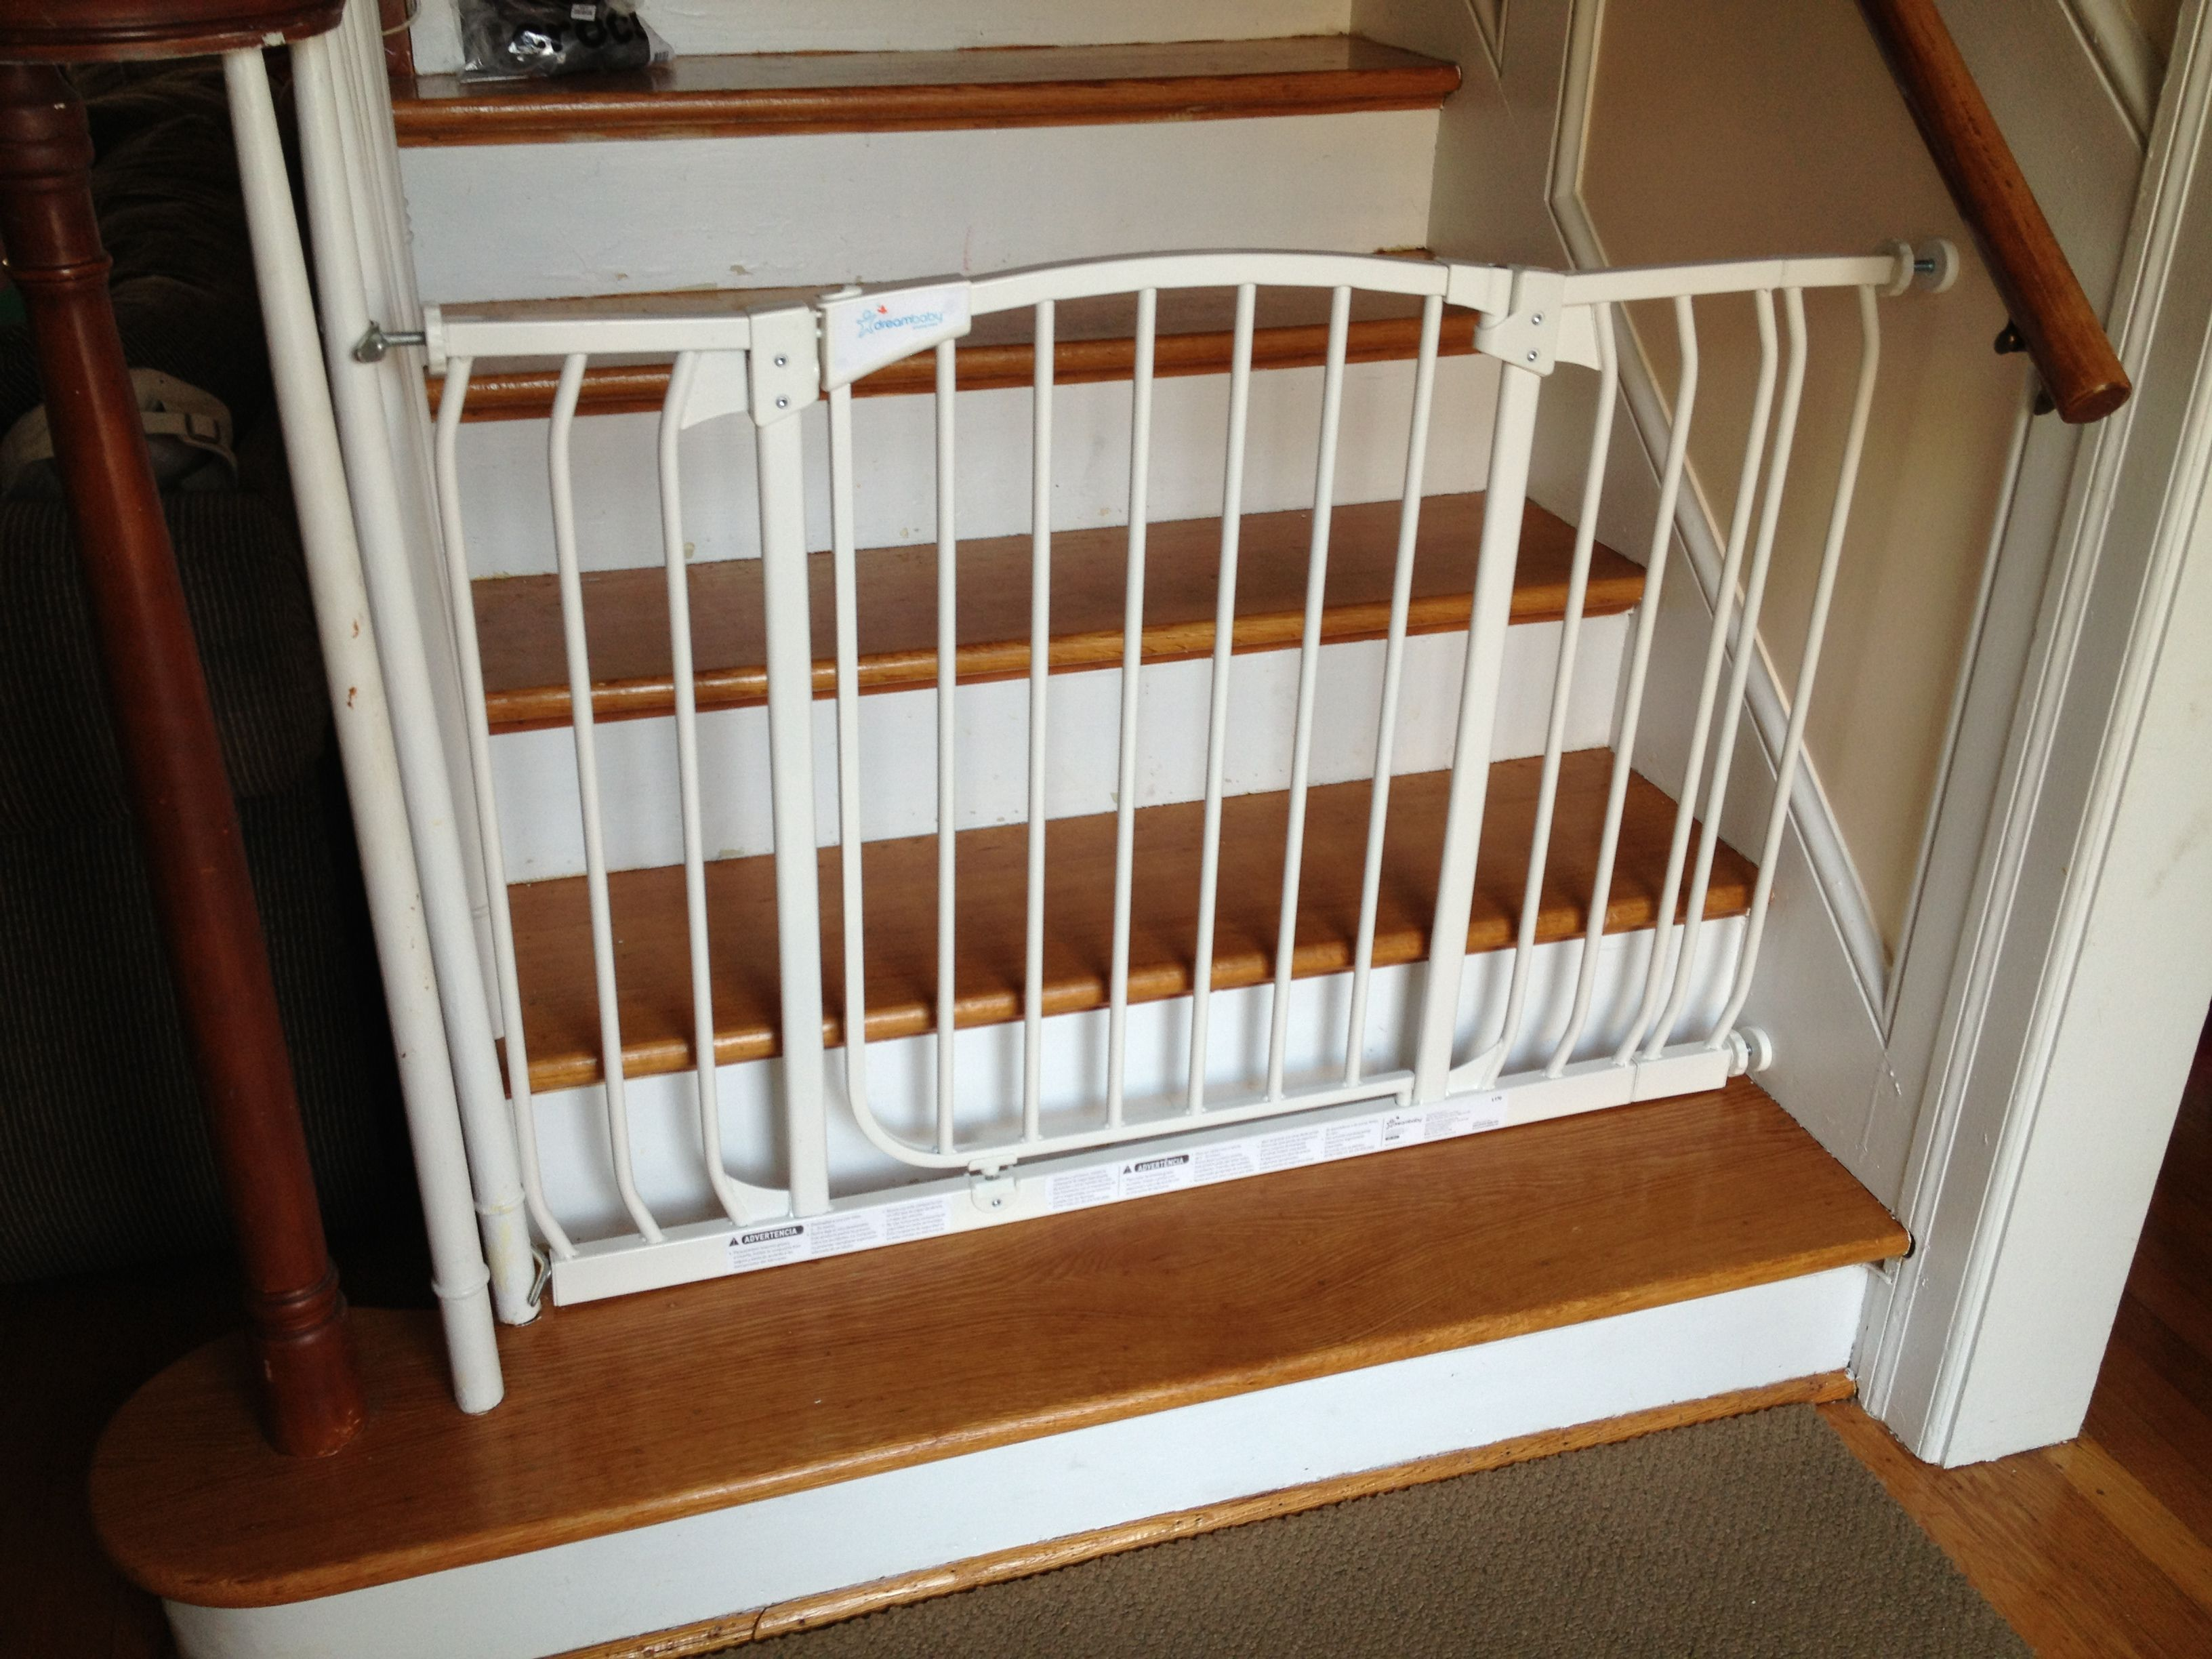 Image of The Best Baby Gate for Top of Stairs Design that